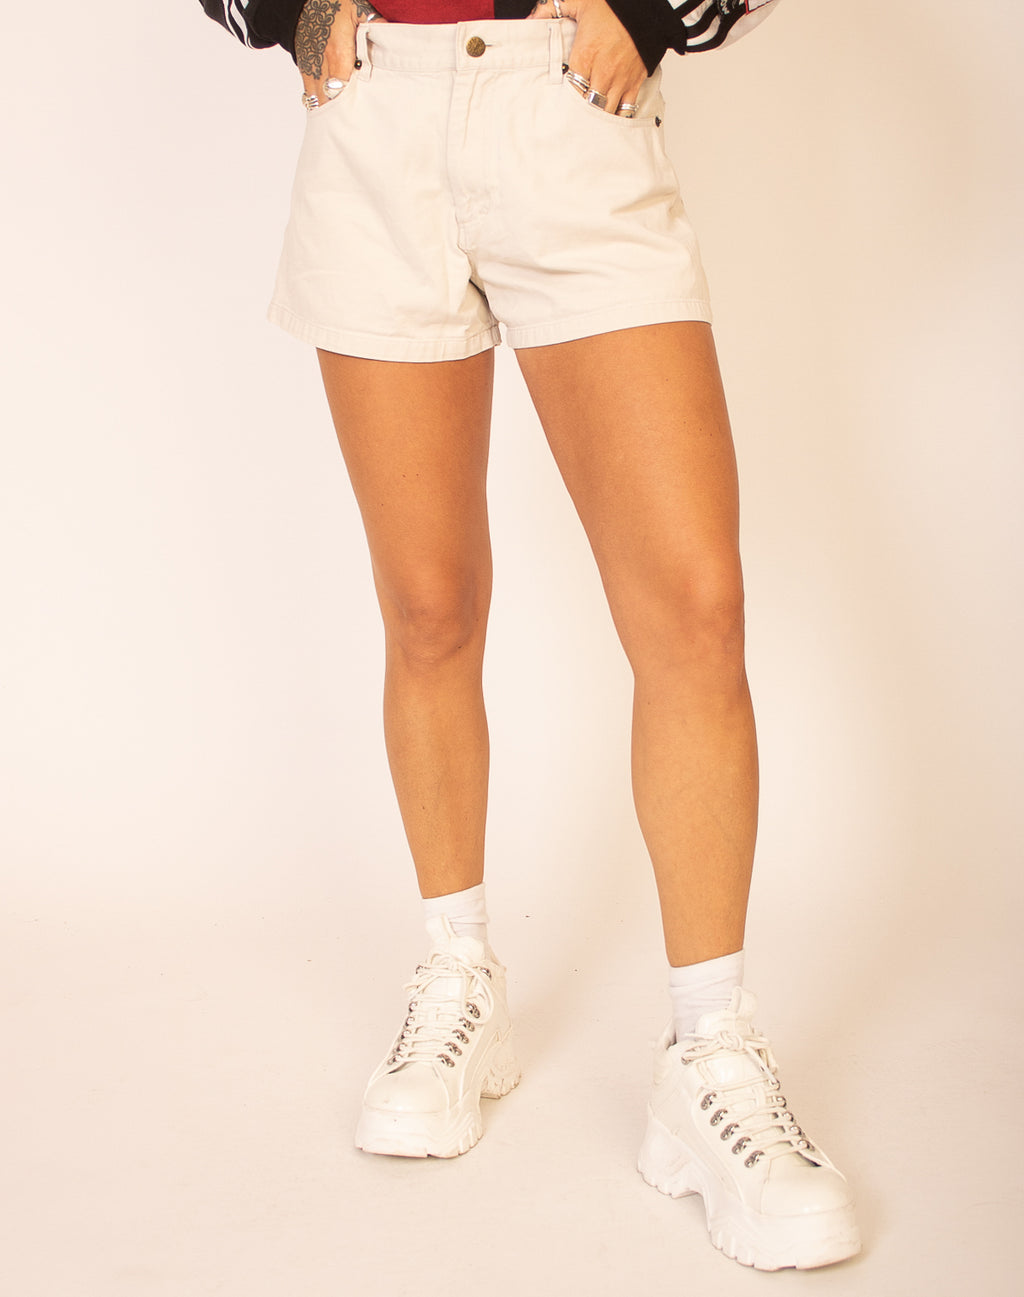 JUDD SAND HIGH WAISTED SHORTS